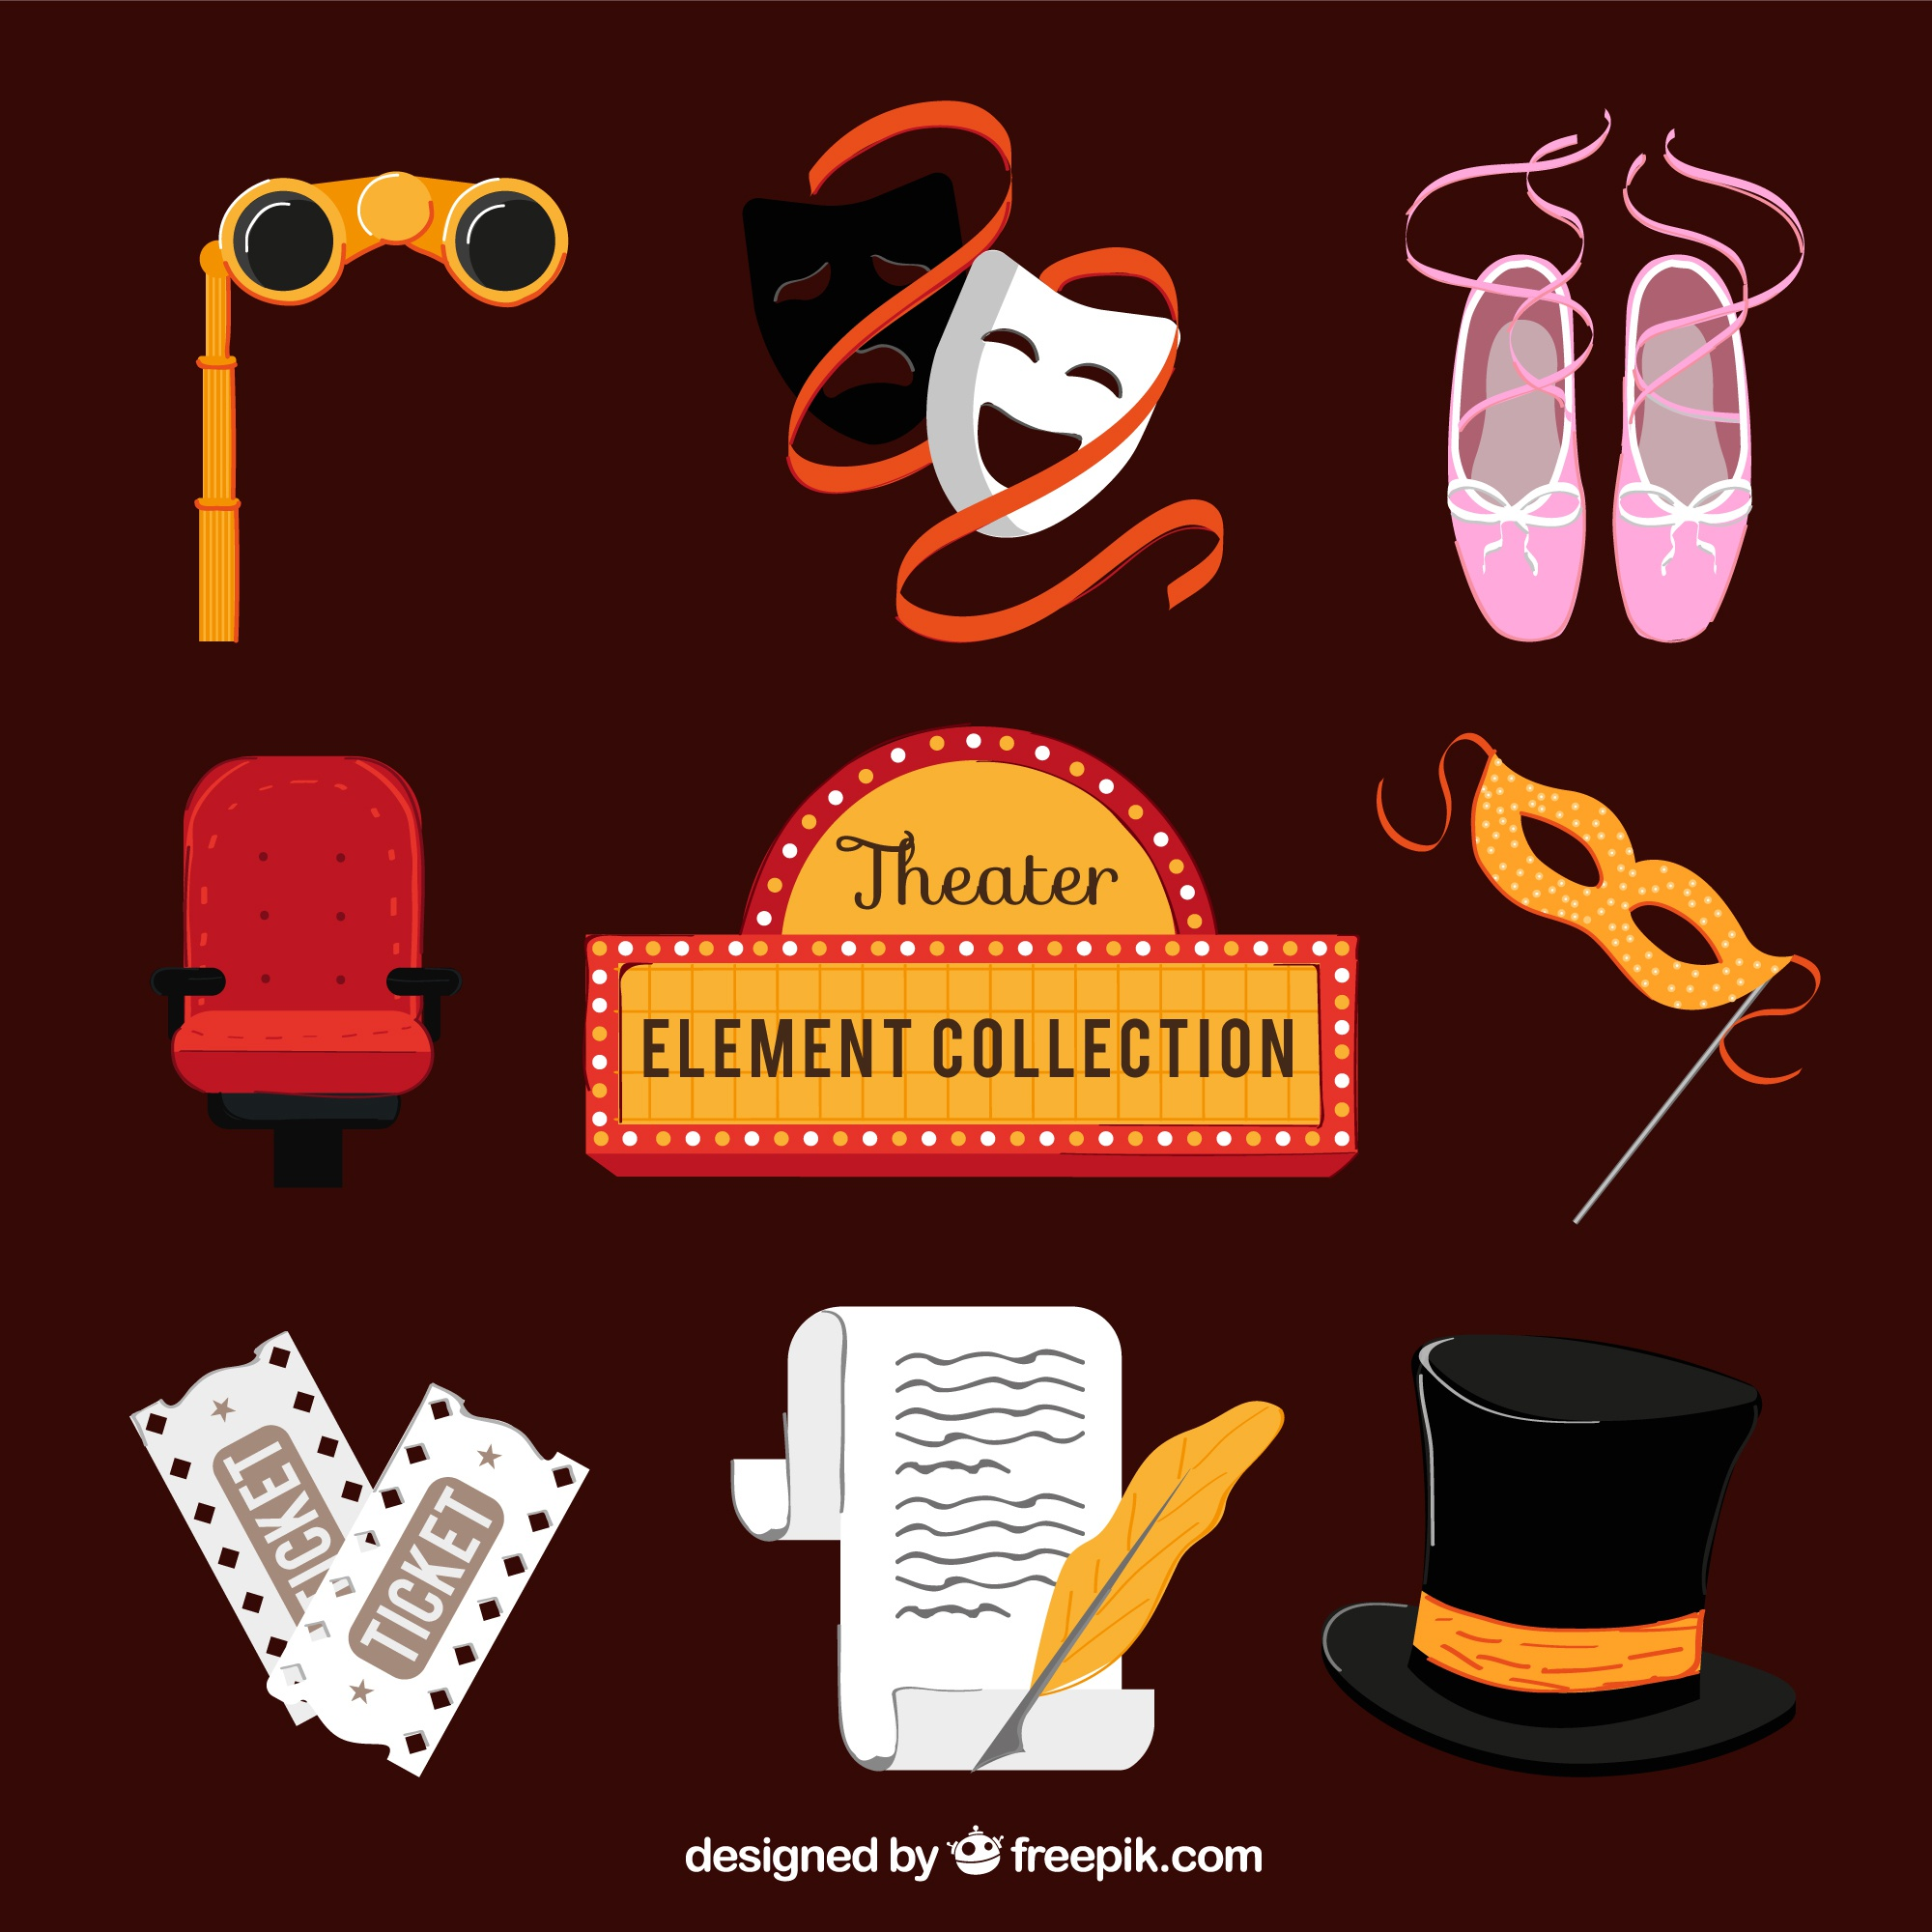 Theater elements collection